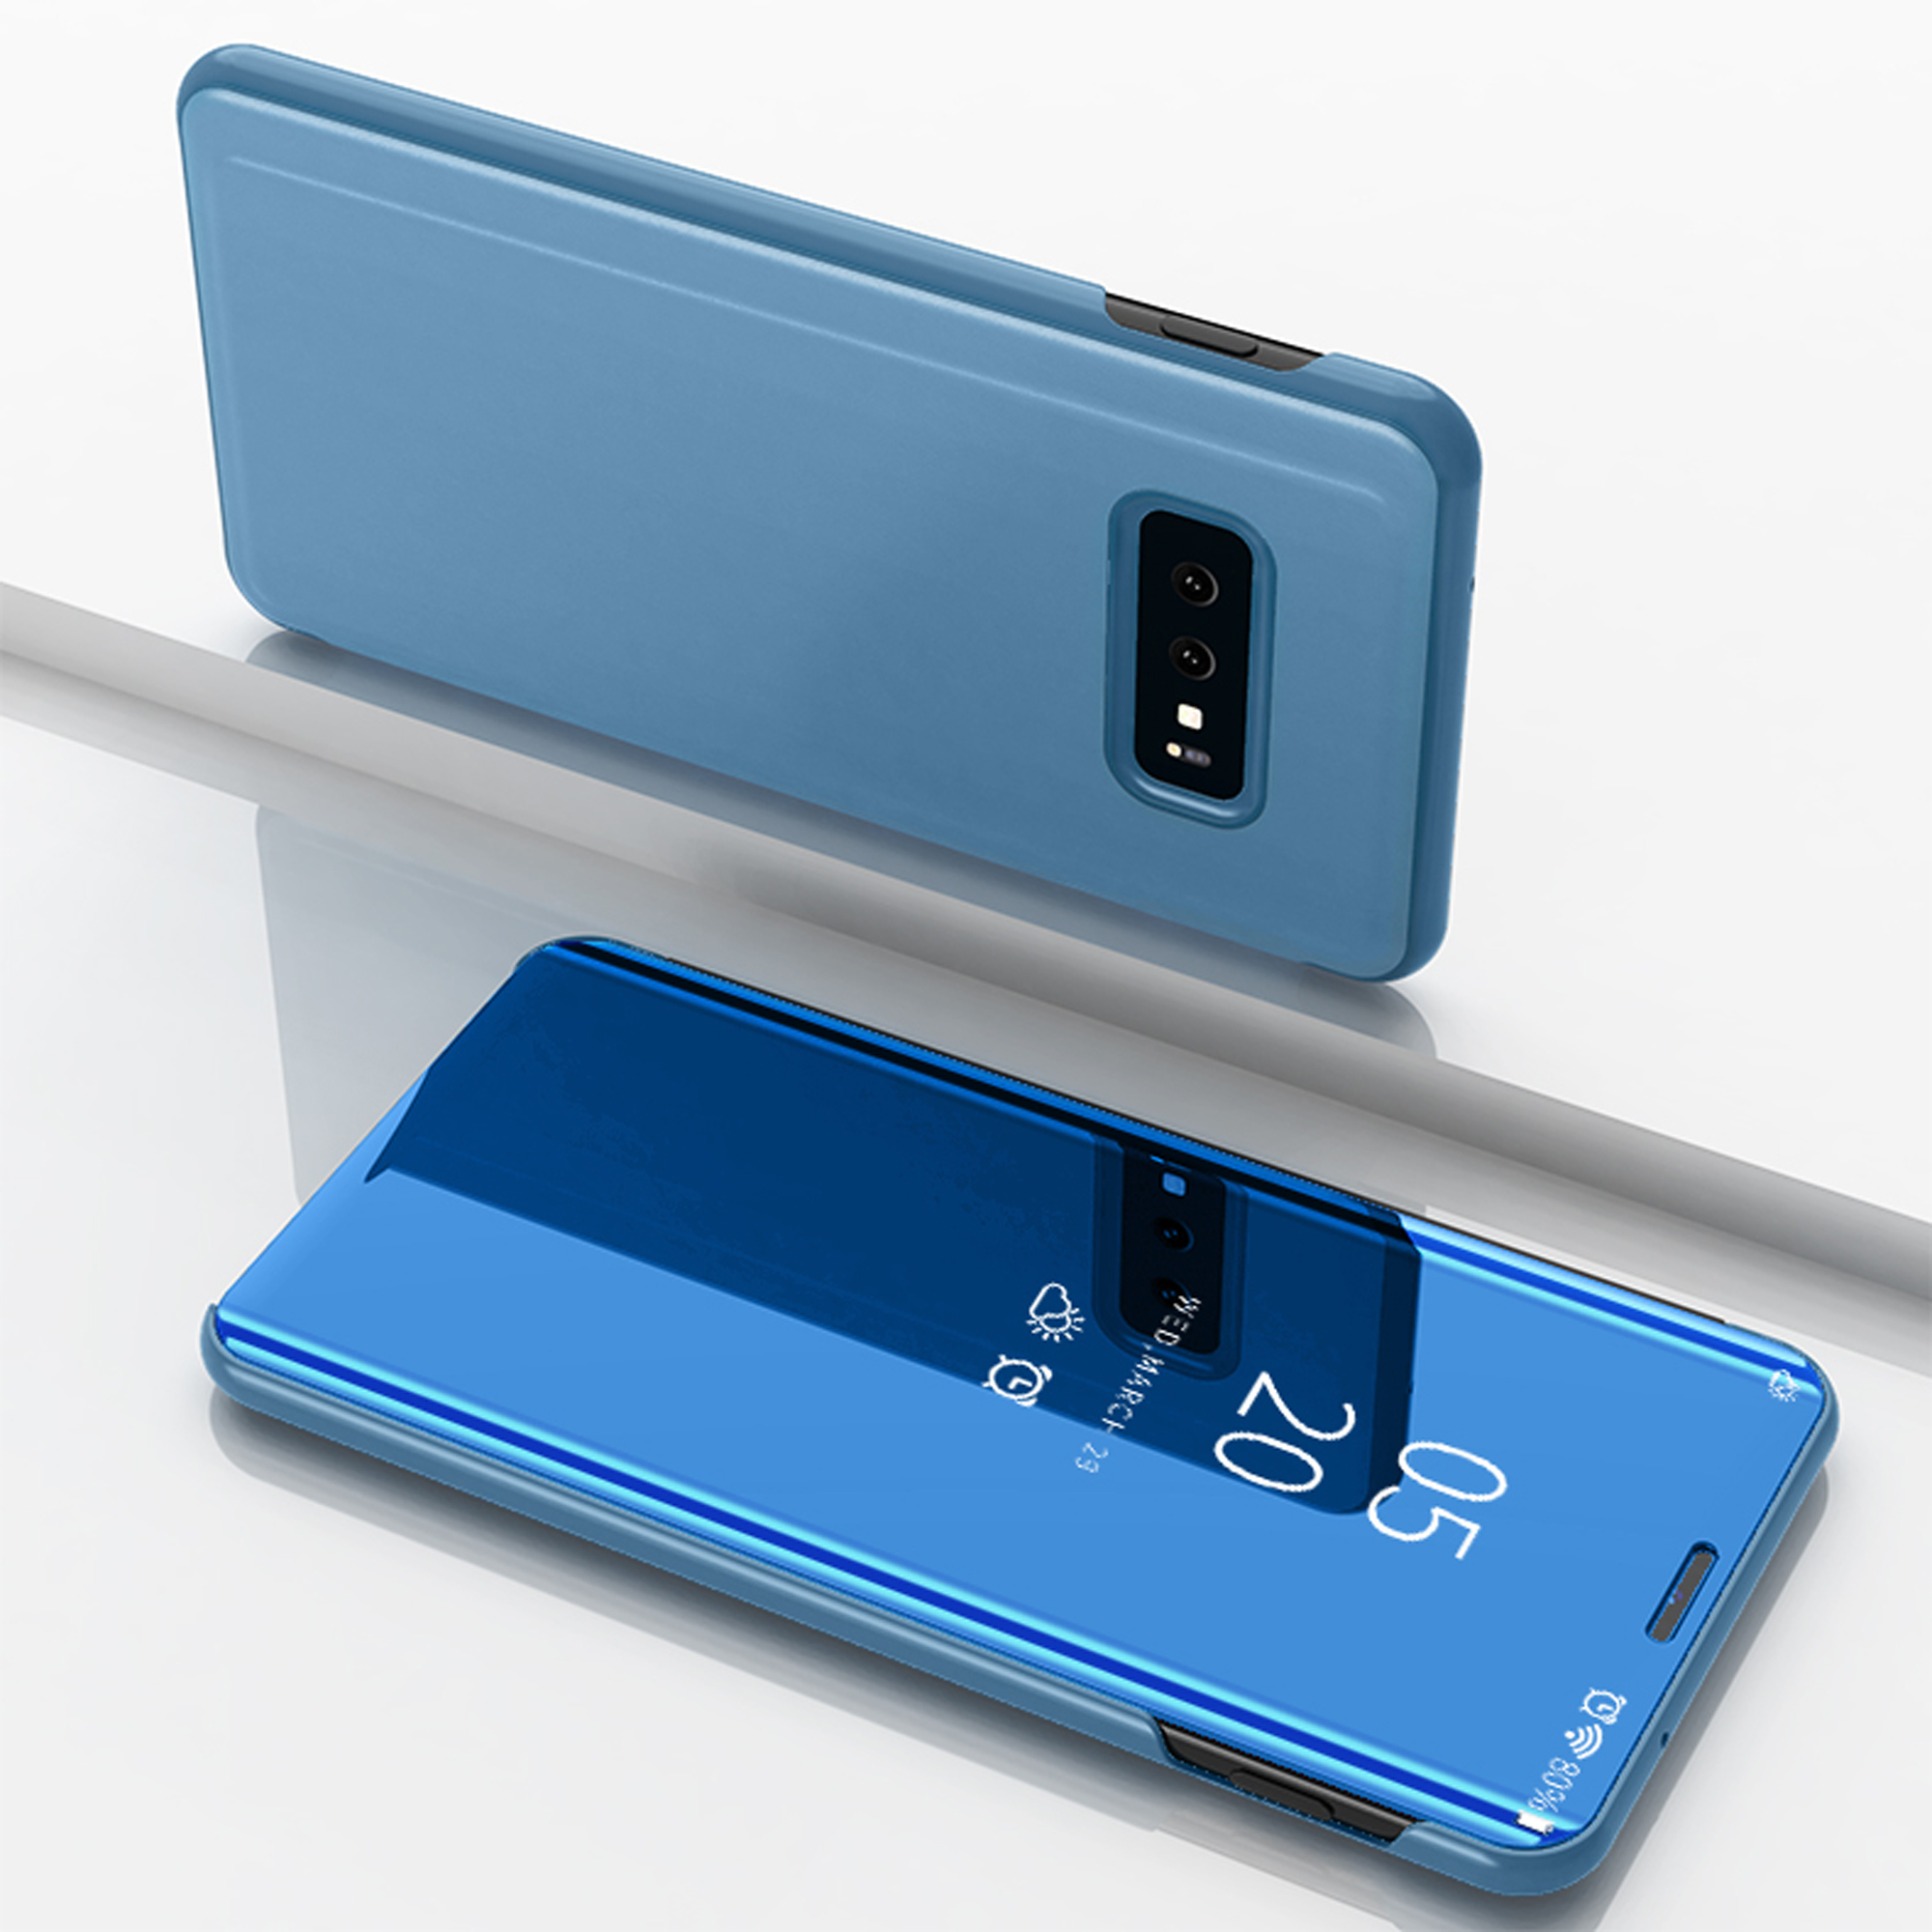 New-Samsung-Galaxy-S9-S10-Plus-Smart-View-Mirror-Leather-Flip-Stand-Case-Cover thumbnail 48